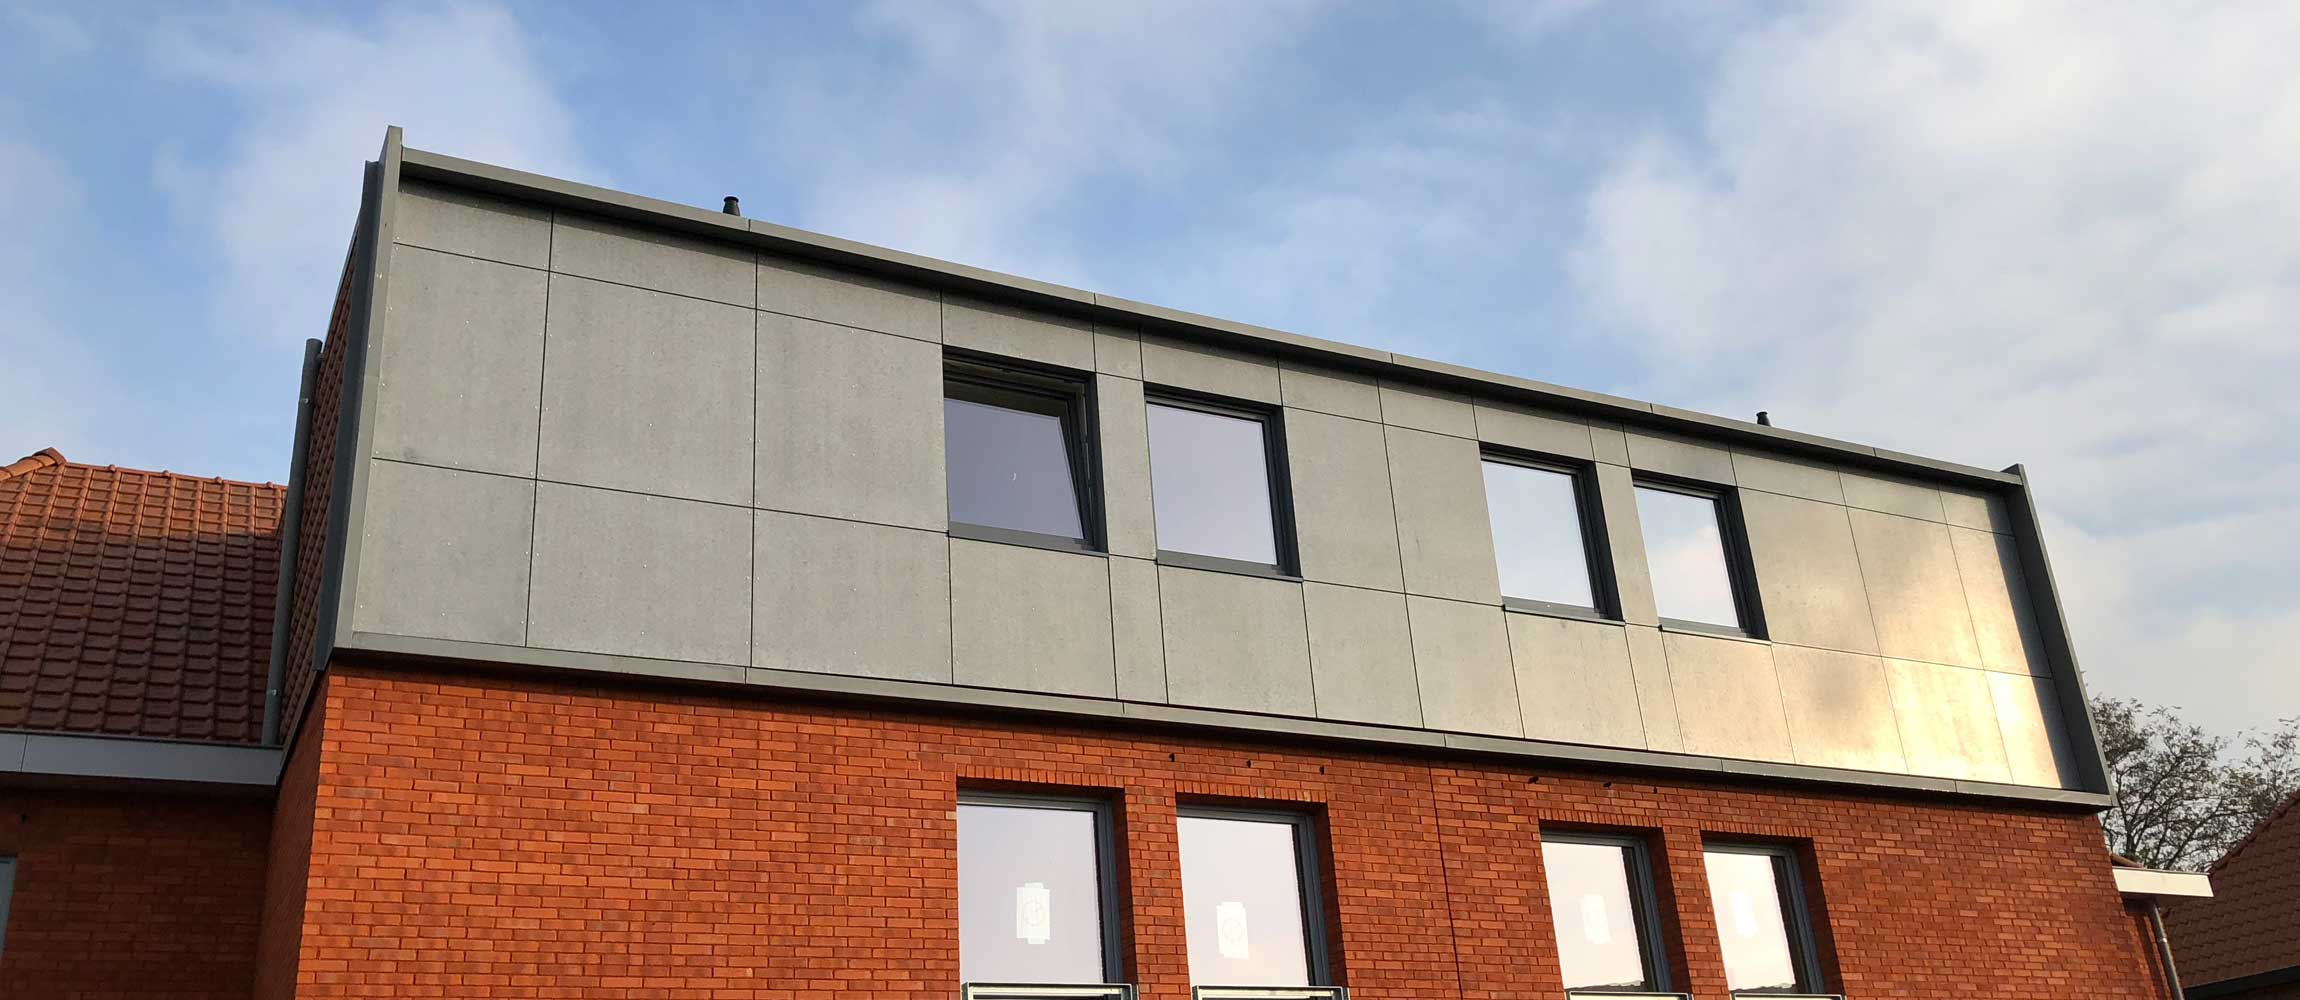 Noviclad facade sidings panels